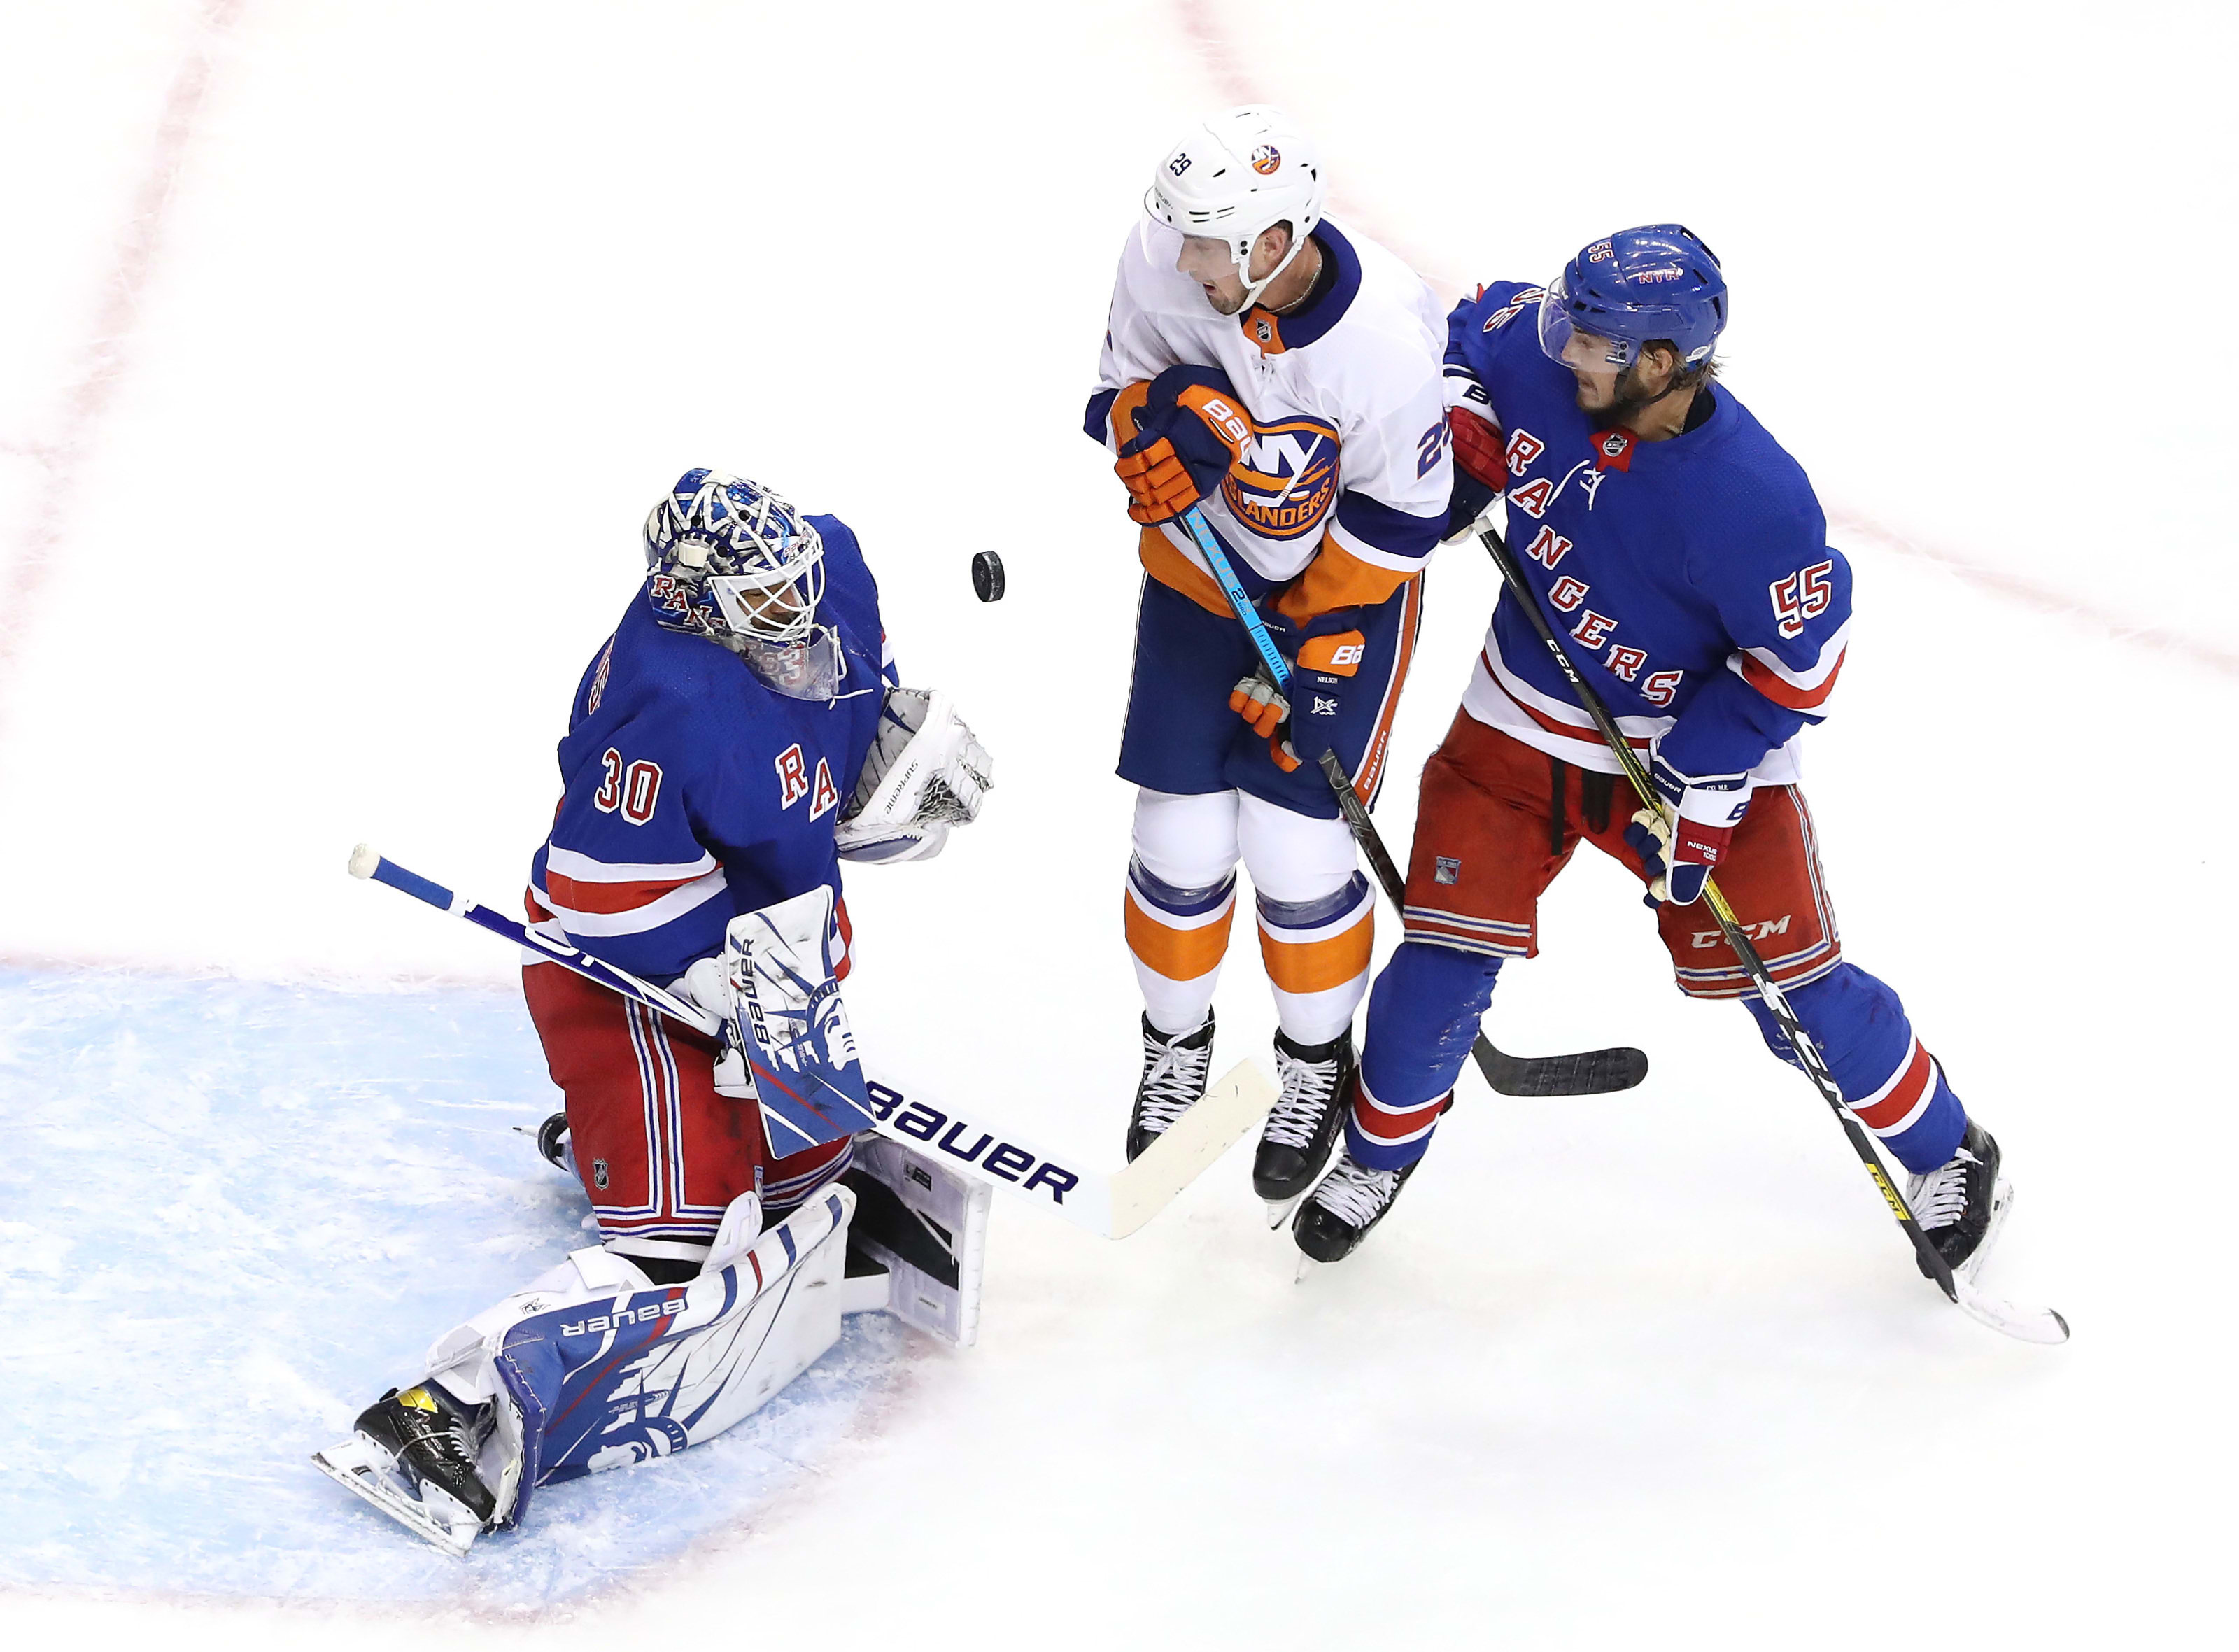 Henrik Lundqvist #30 of the New York Rangers stops a shot in the second period as Brock Nelson #29 of the New York Islanders and Ryan Lindgren #55 of the New York Rangers stand by during an exhibition game